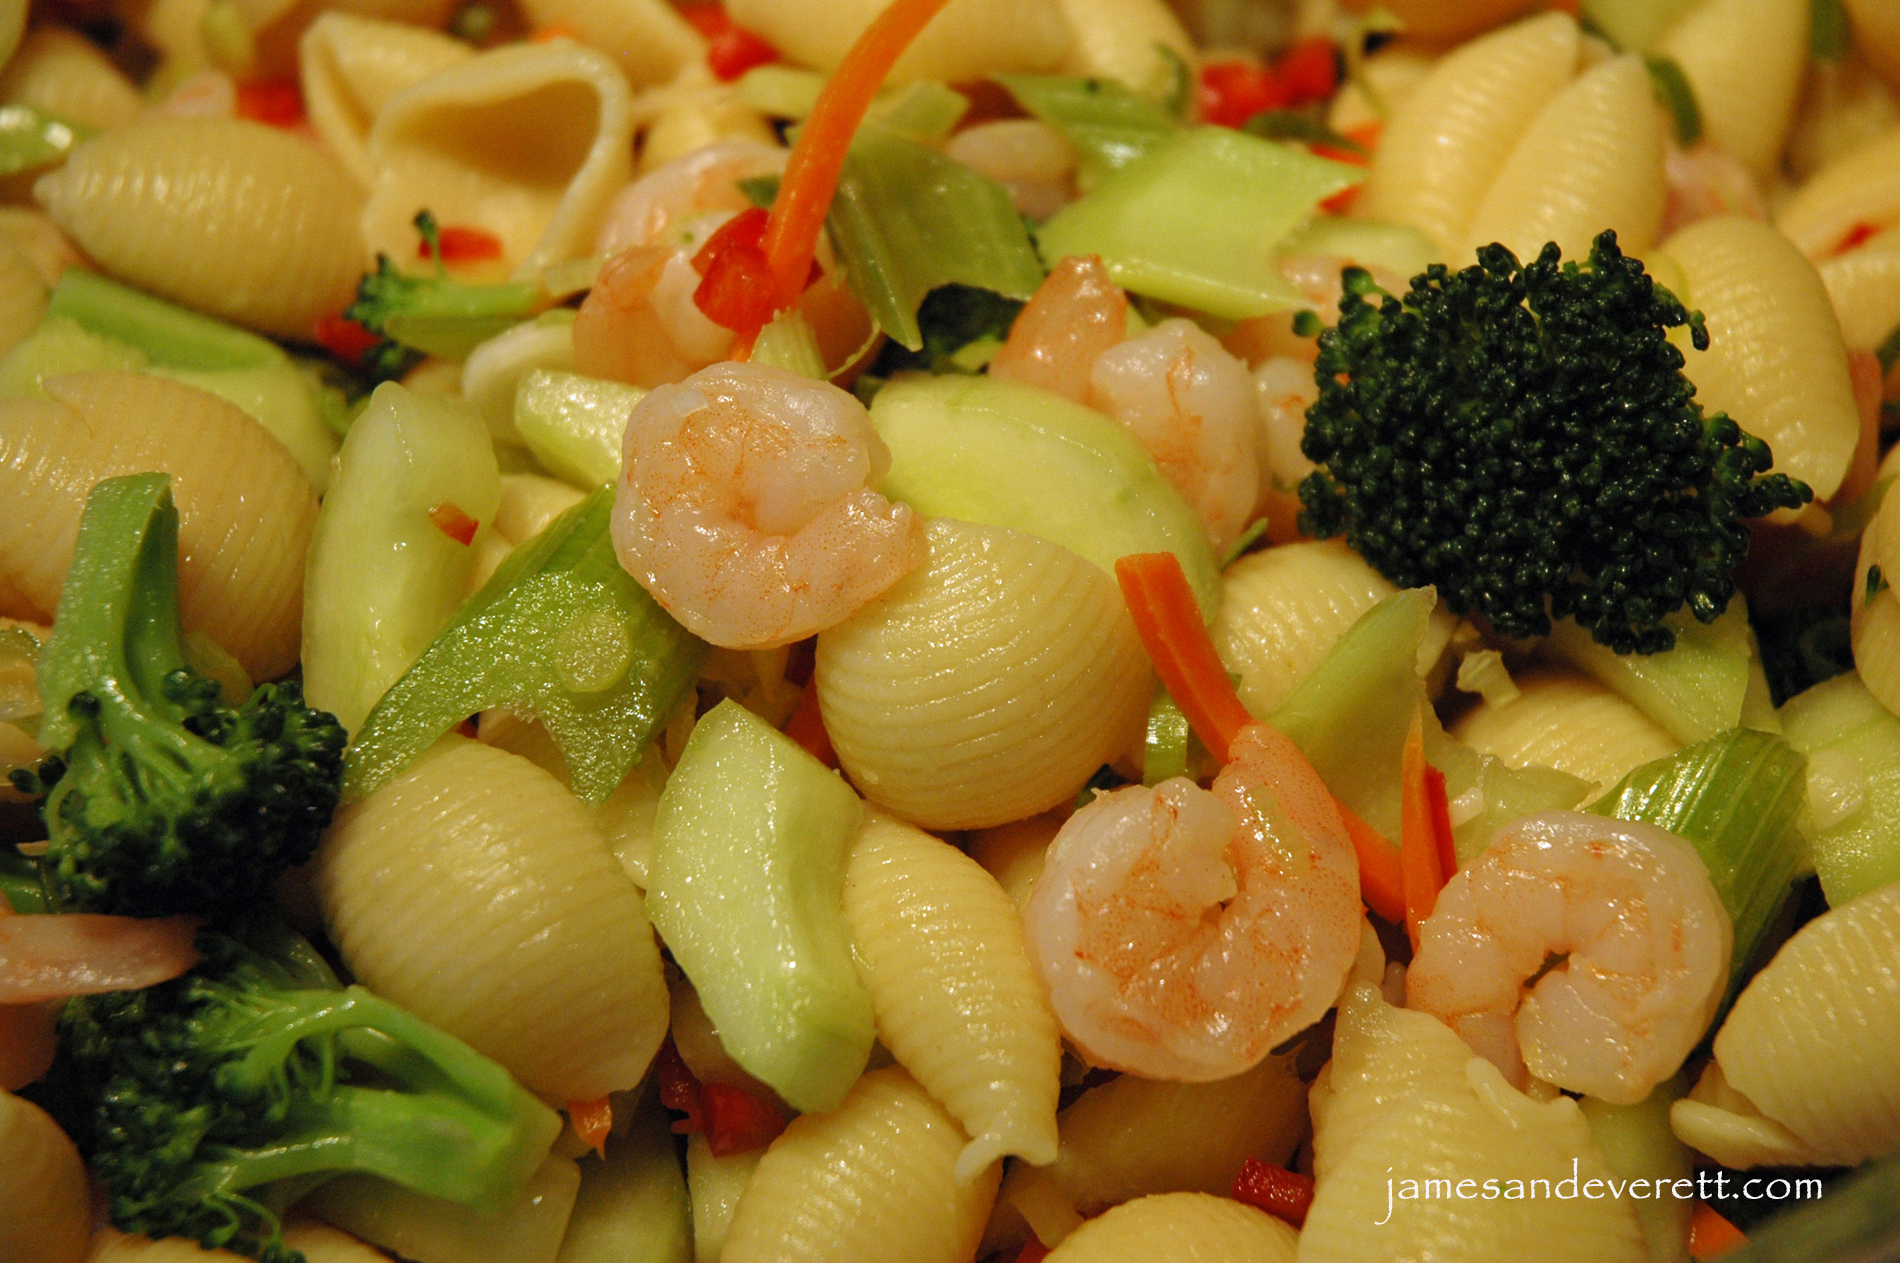 ... creamy shrimp and celery salad creamy shrimp and celery salad recipes